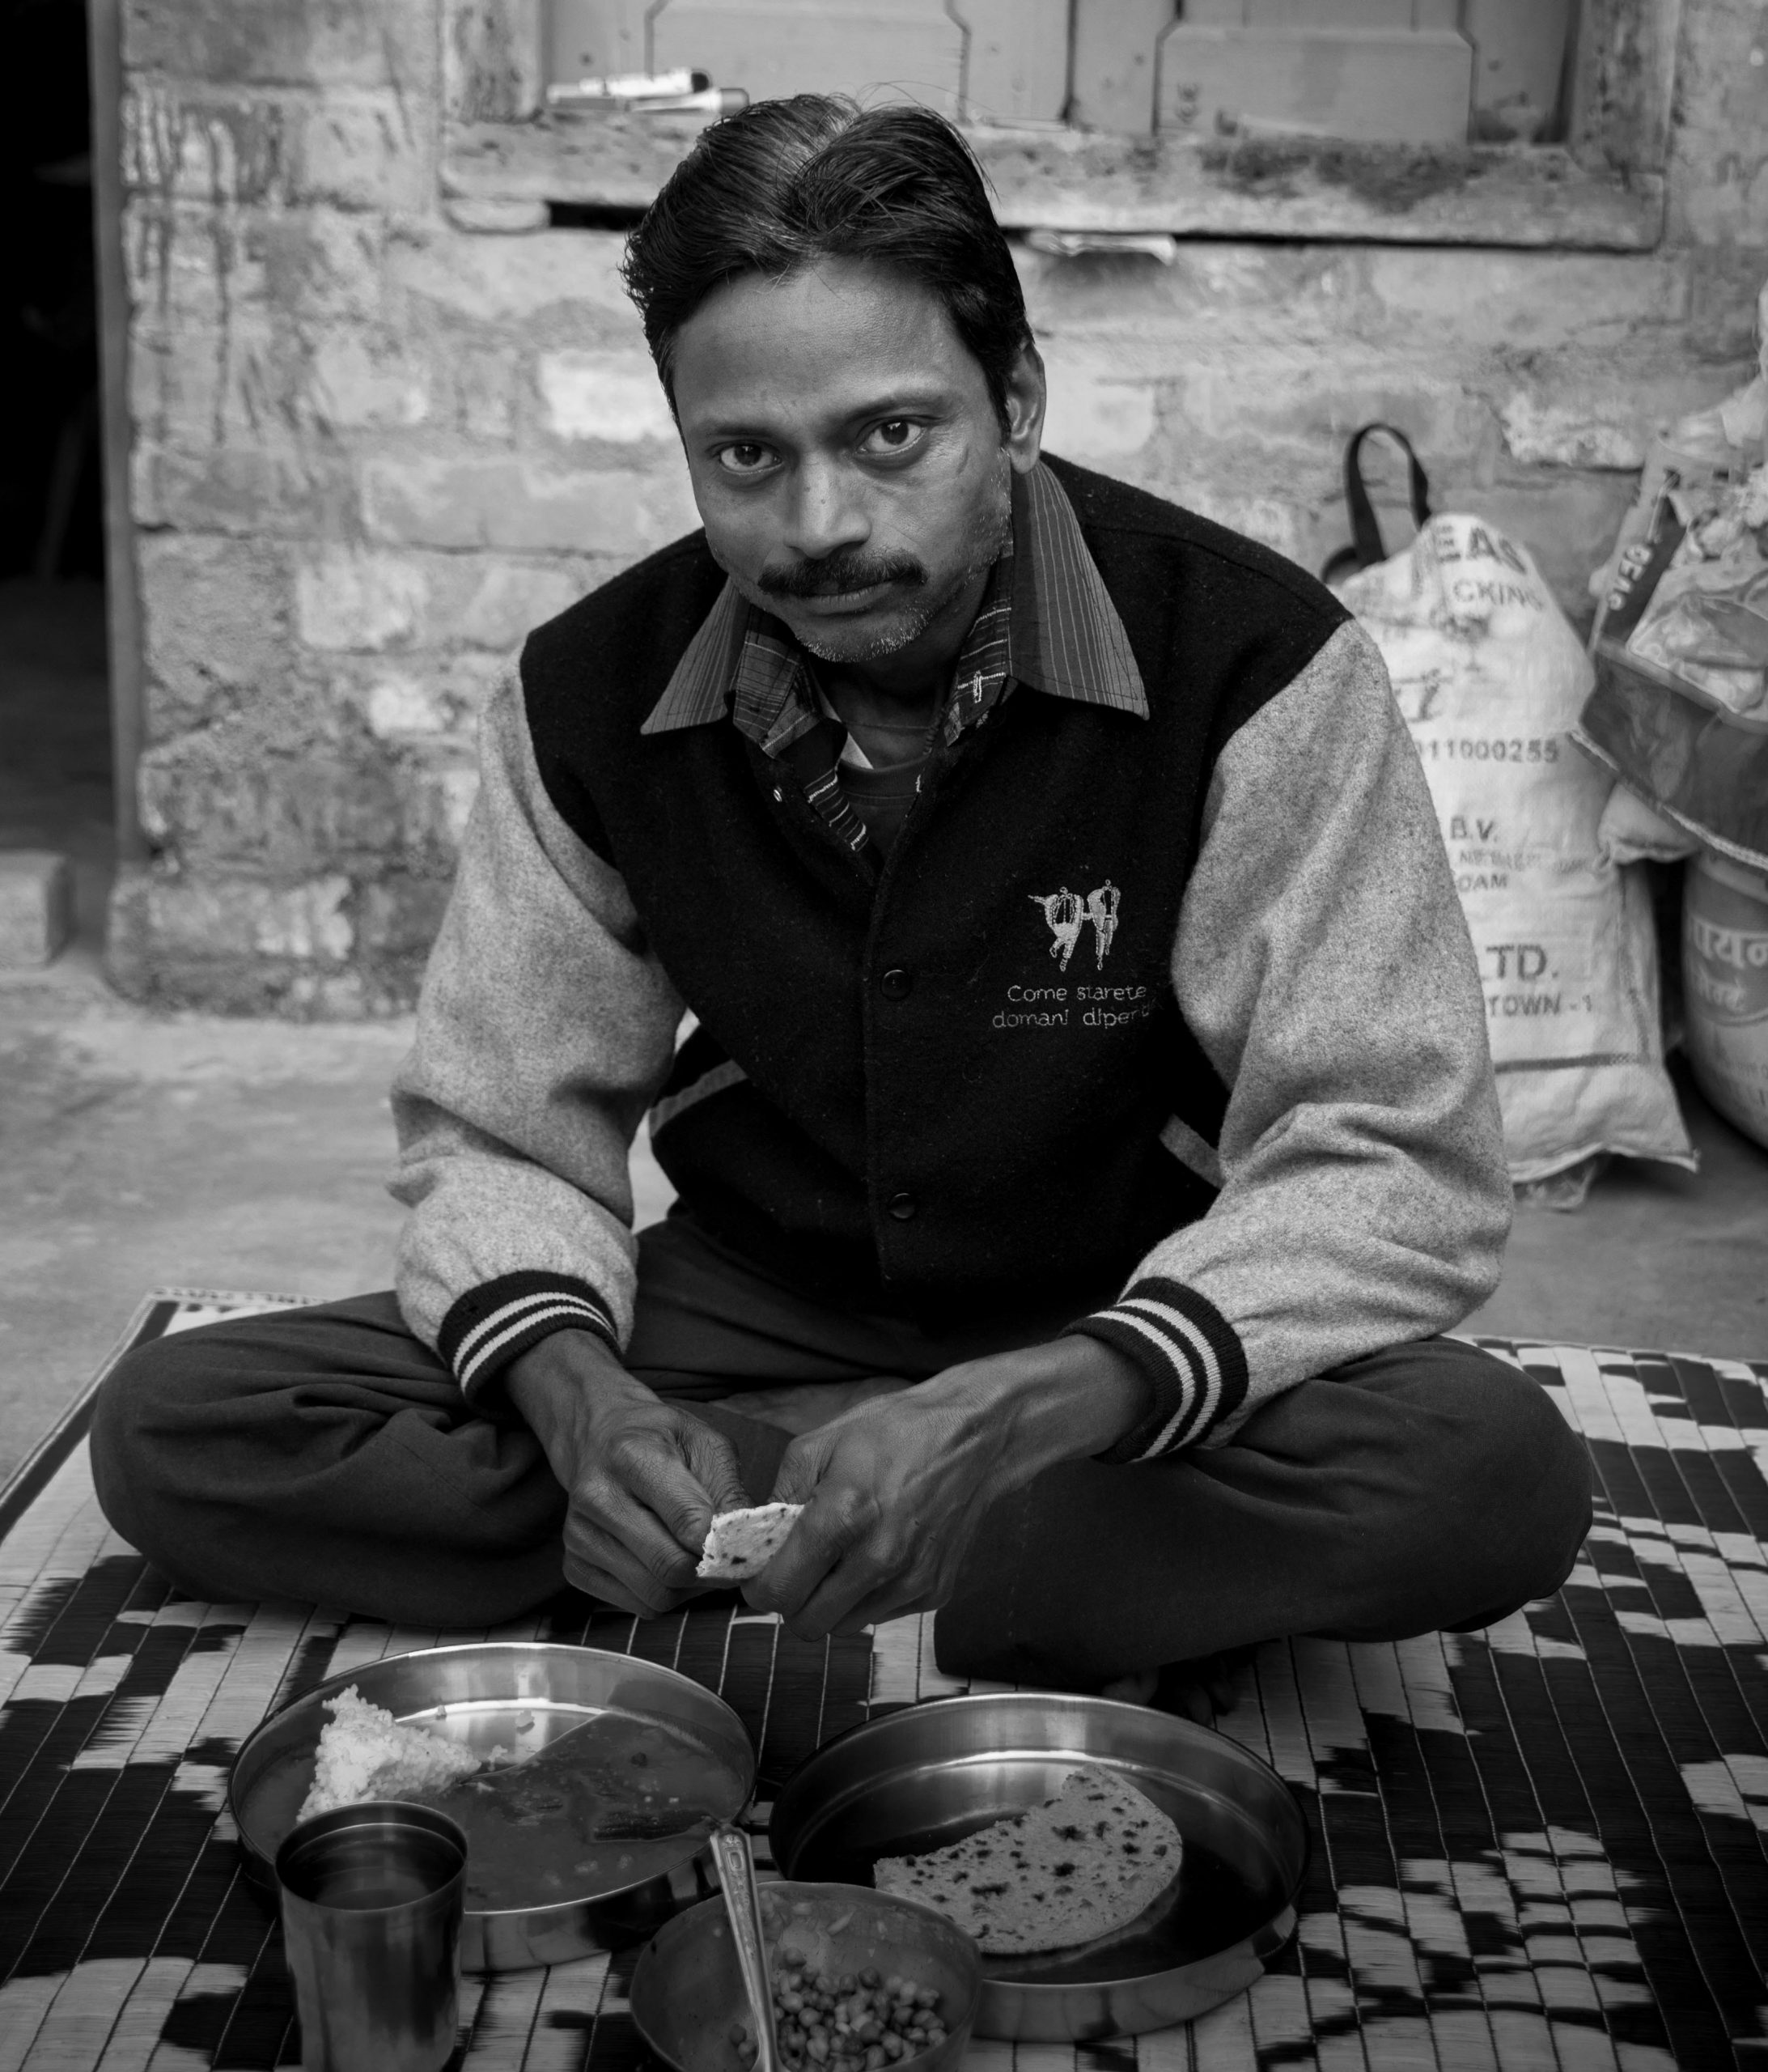 man sitting and eating on the ground